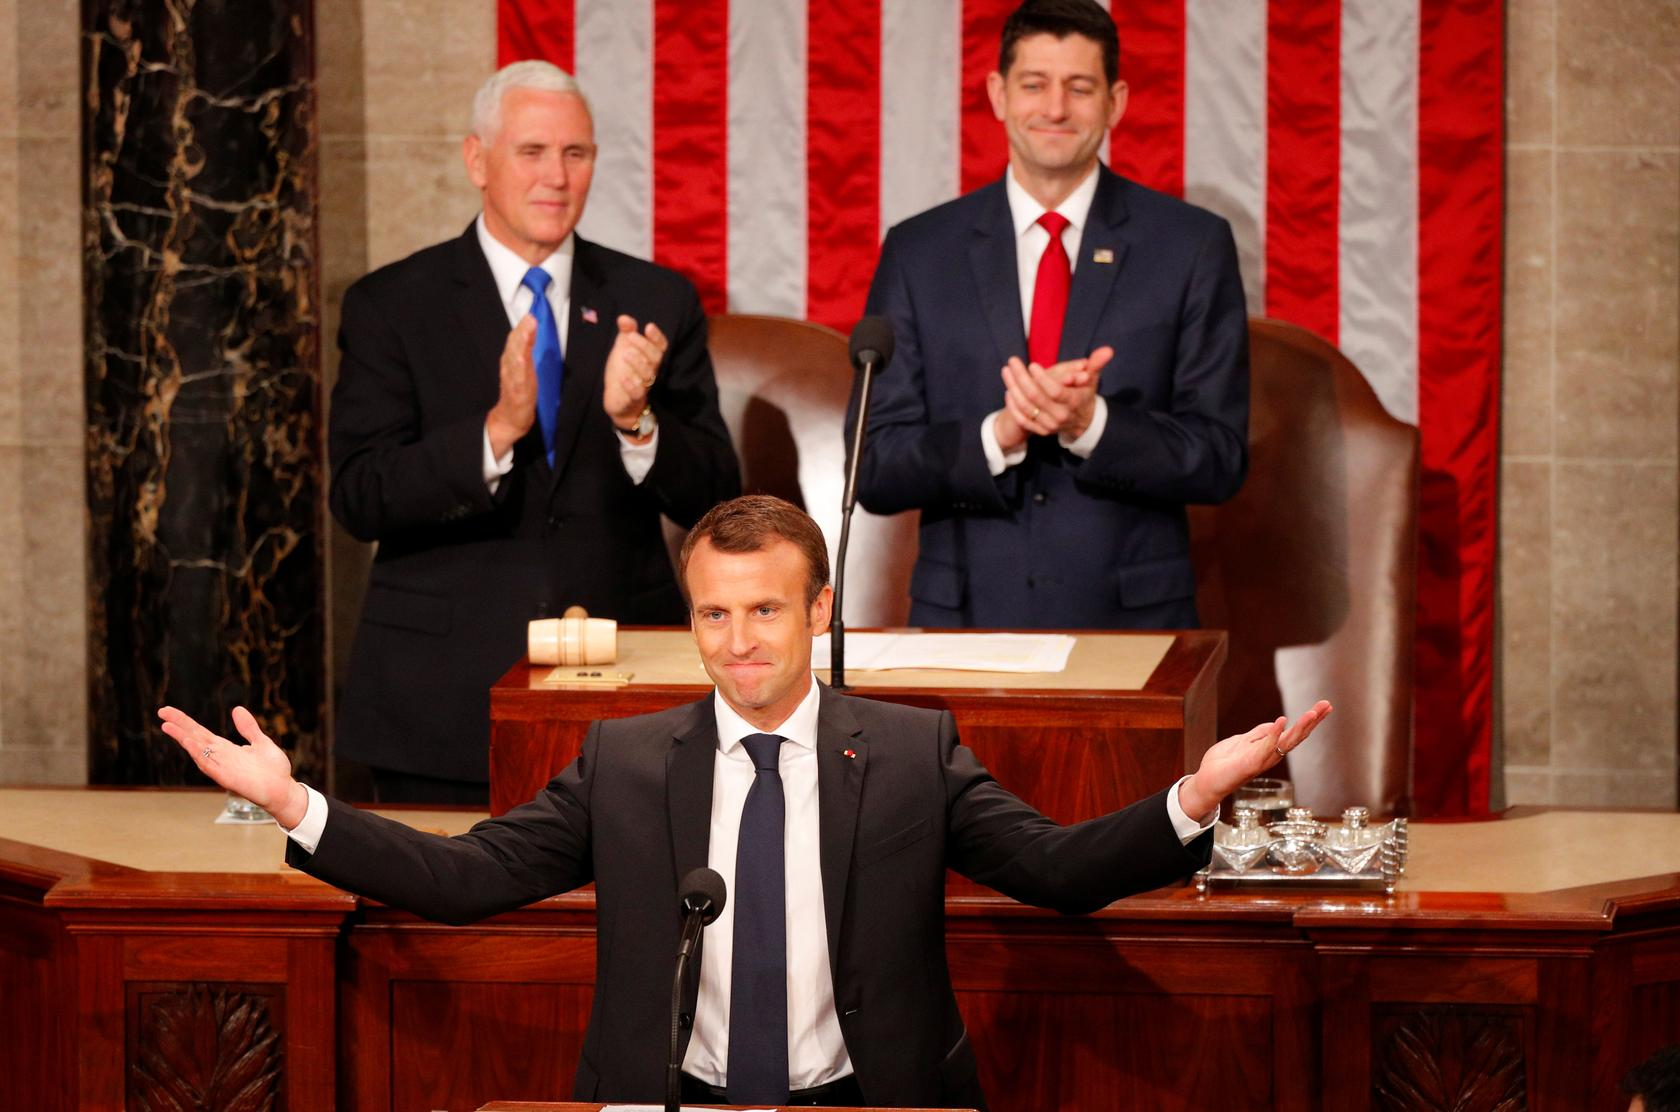 Friends or not, France's Macron challenges Trump in Congress